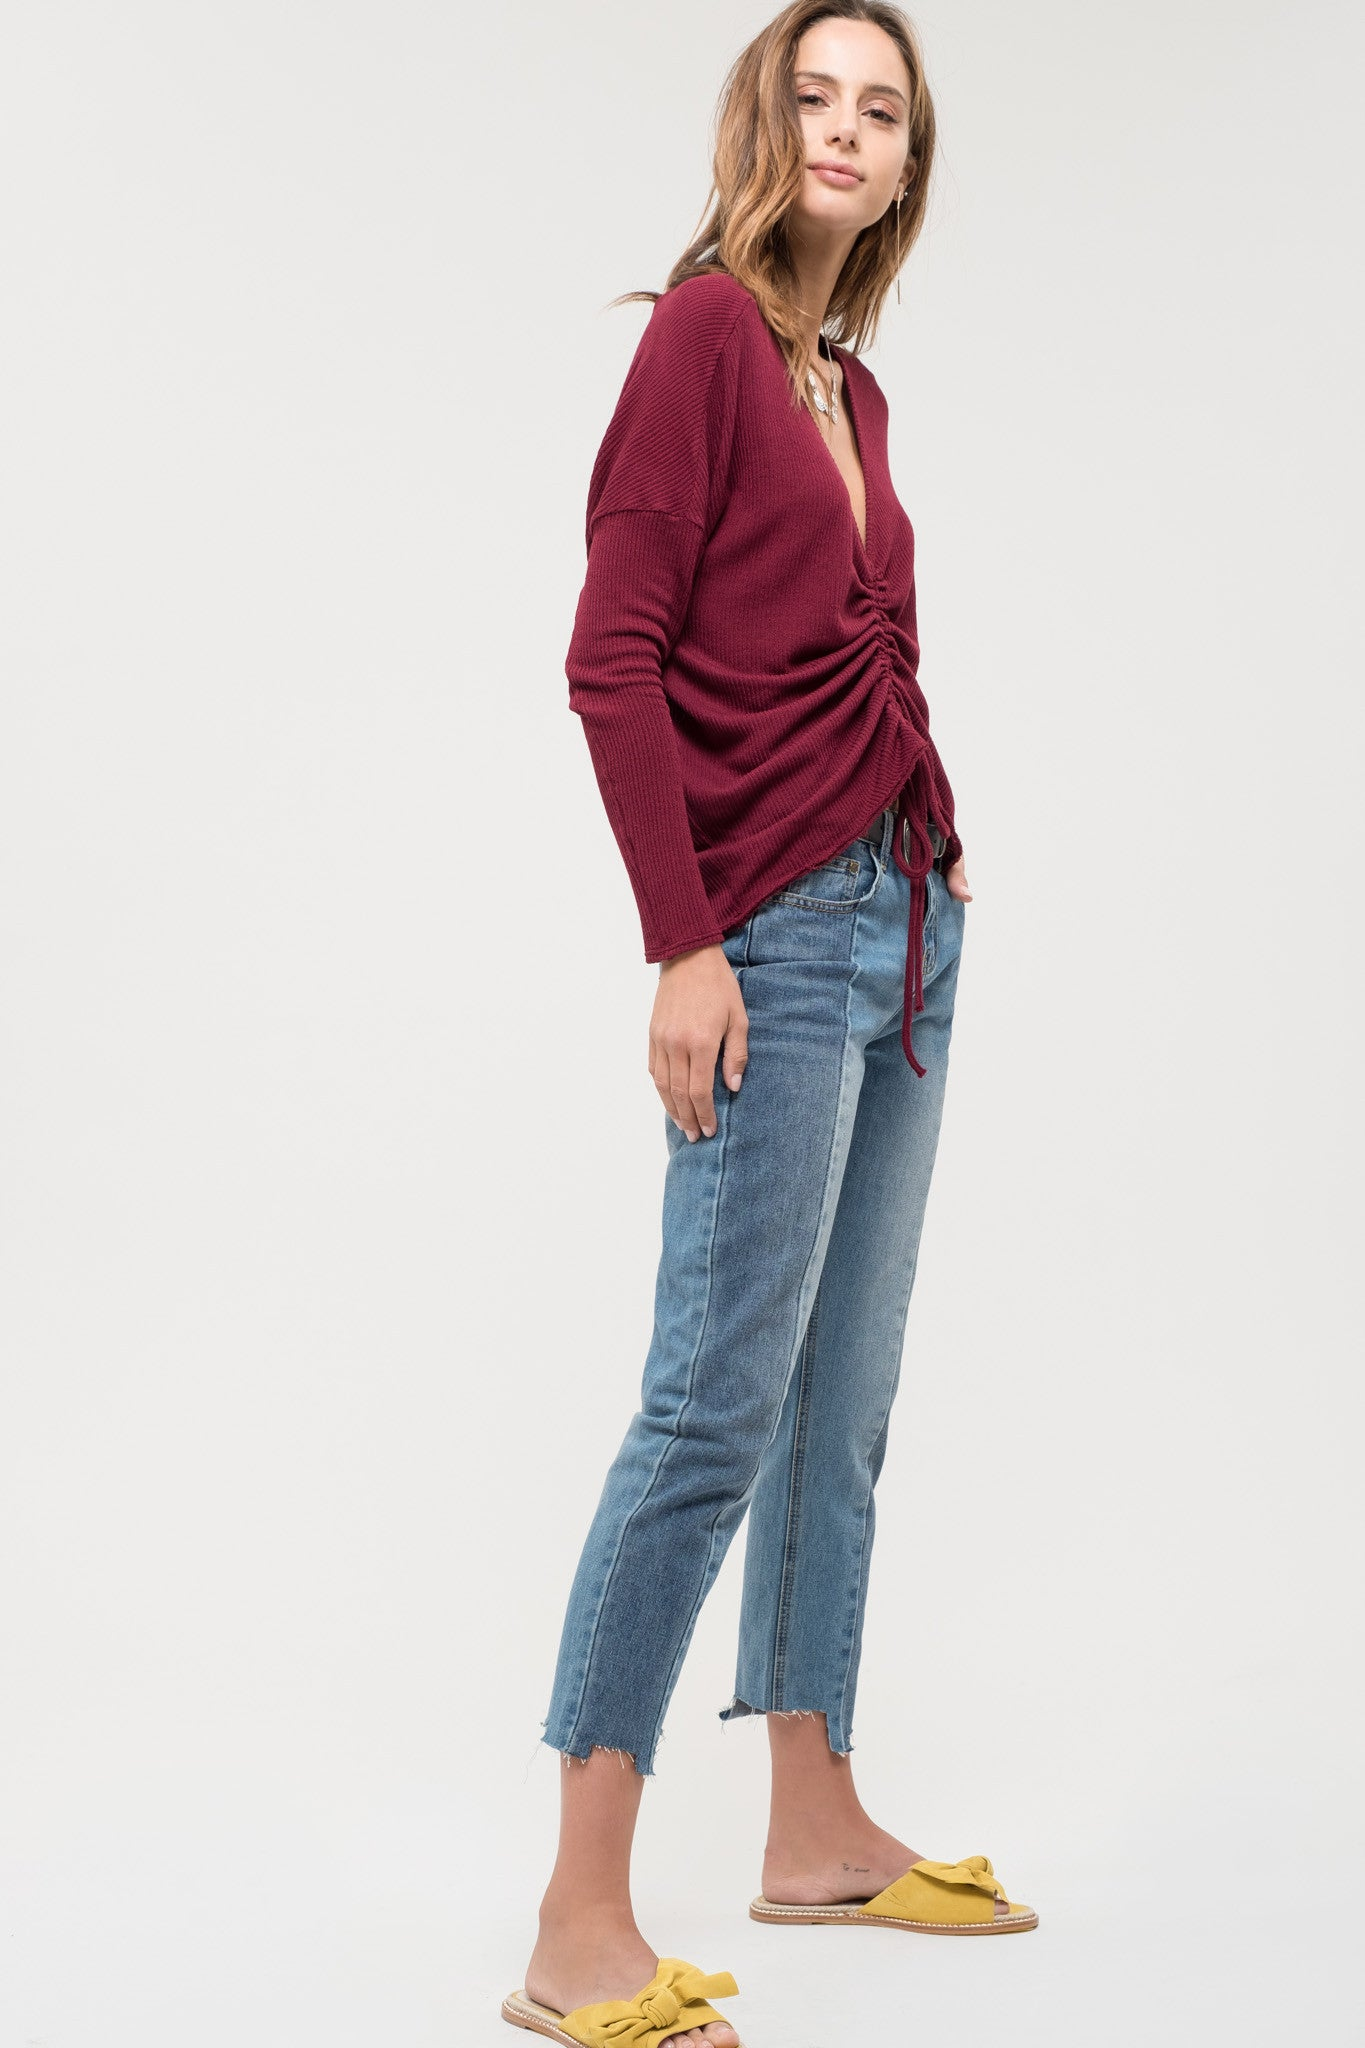 Solid long sleeve burgundy knit top featuring ruching detail with self tie.